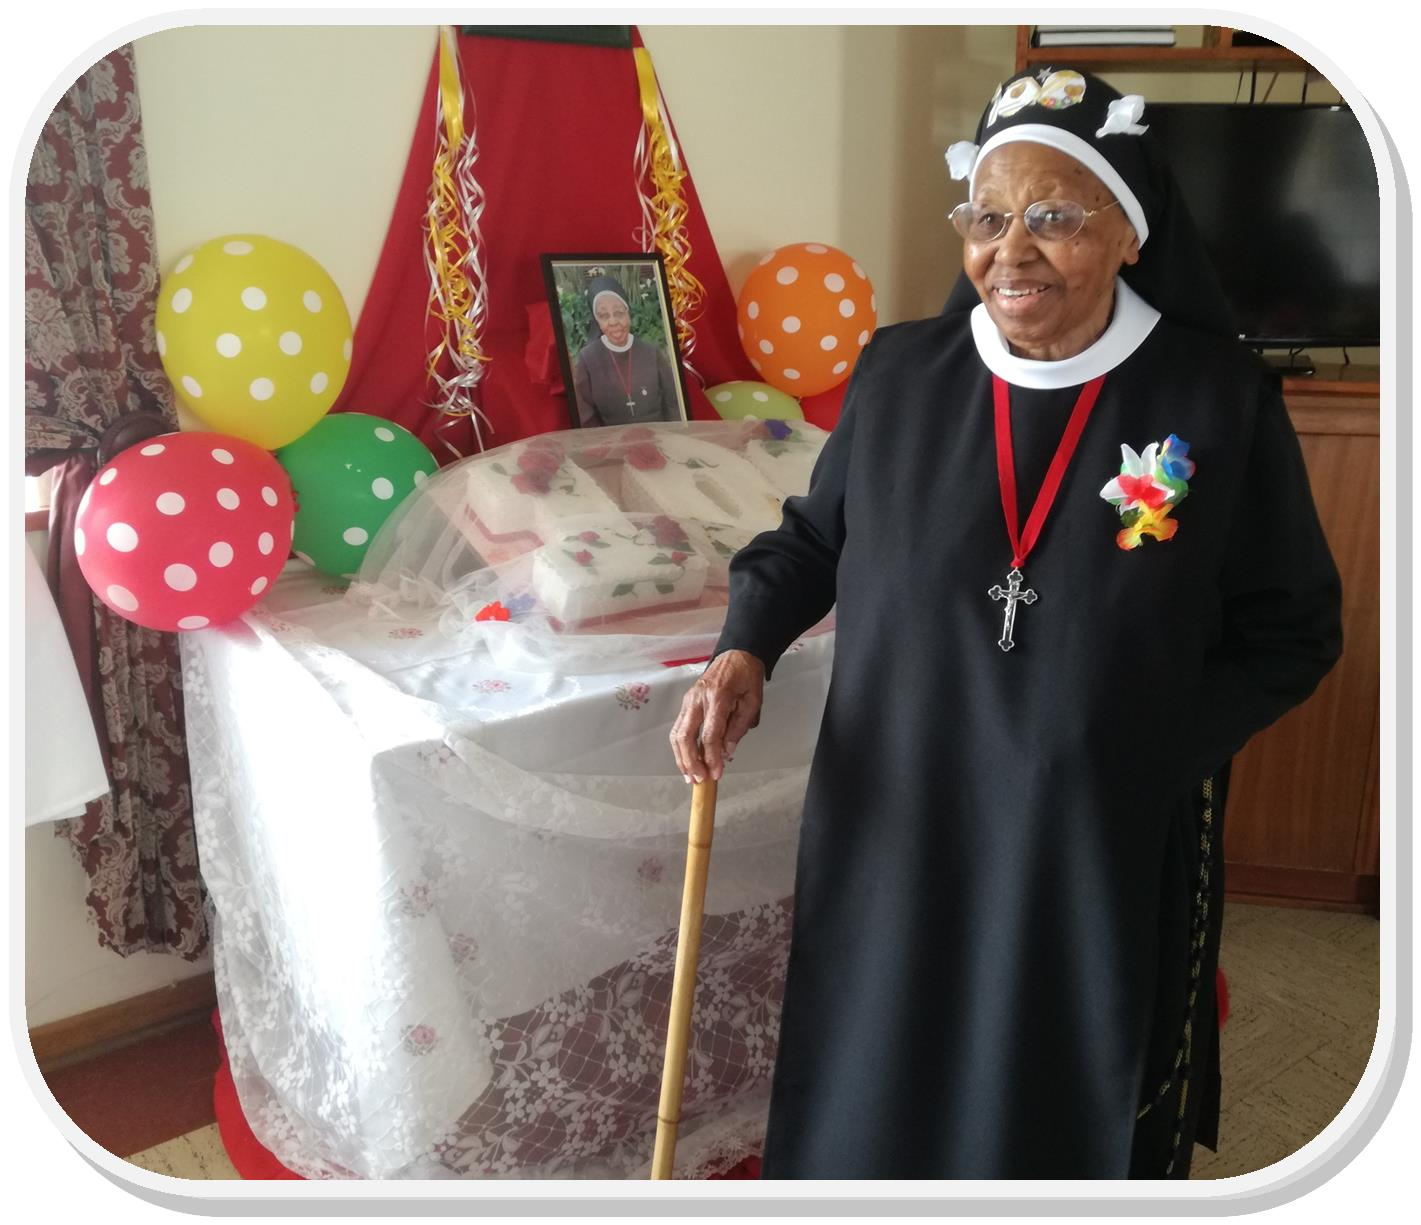 sr bernadette 100th bday